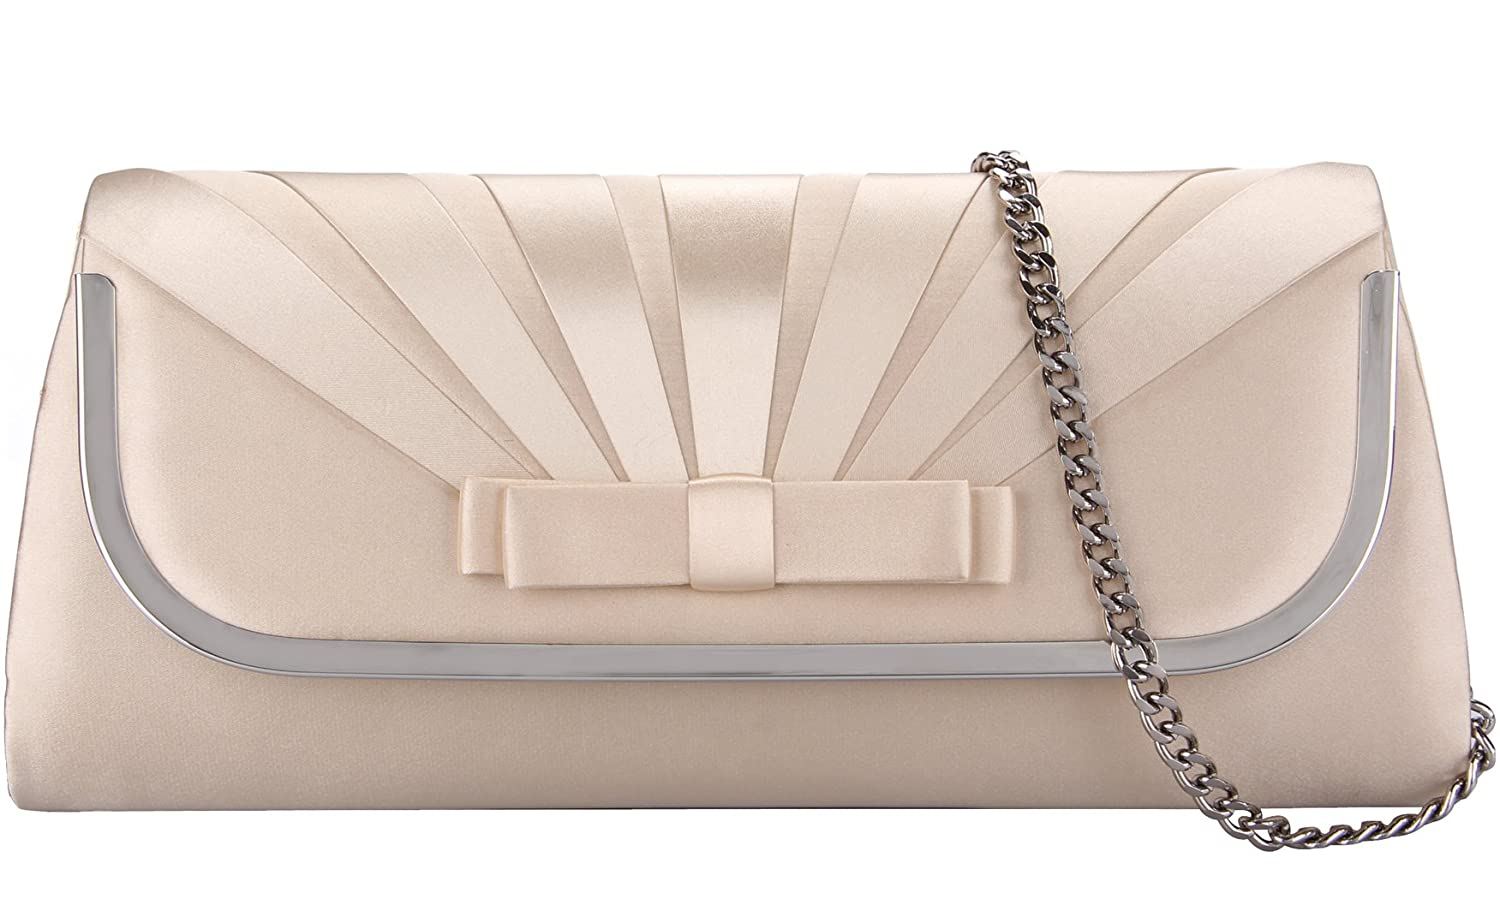 Grace Angel Large Satin Bow Front Evening Handbag Flap Clutch Bag With Crossbody Chain Strap GA16678